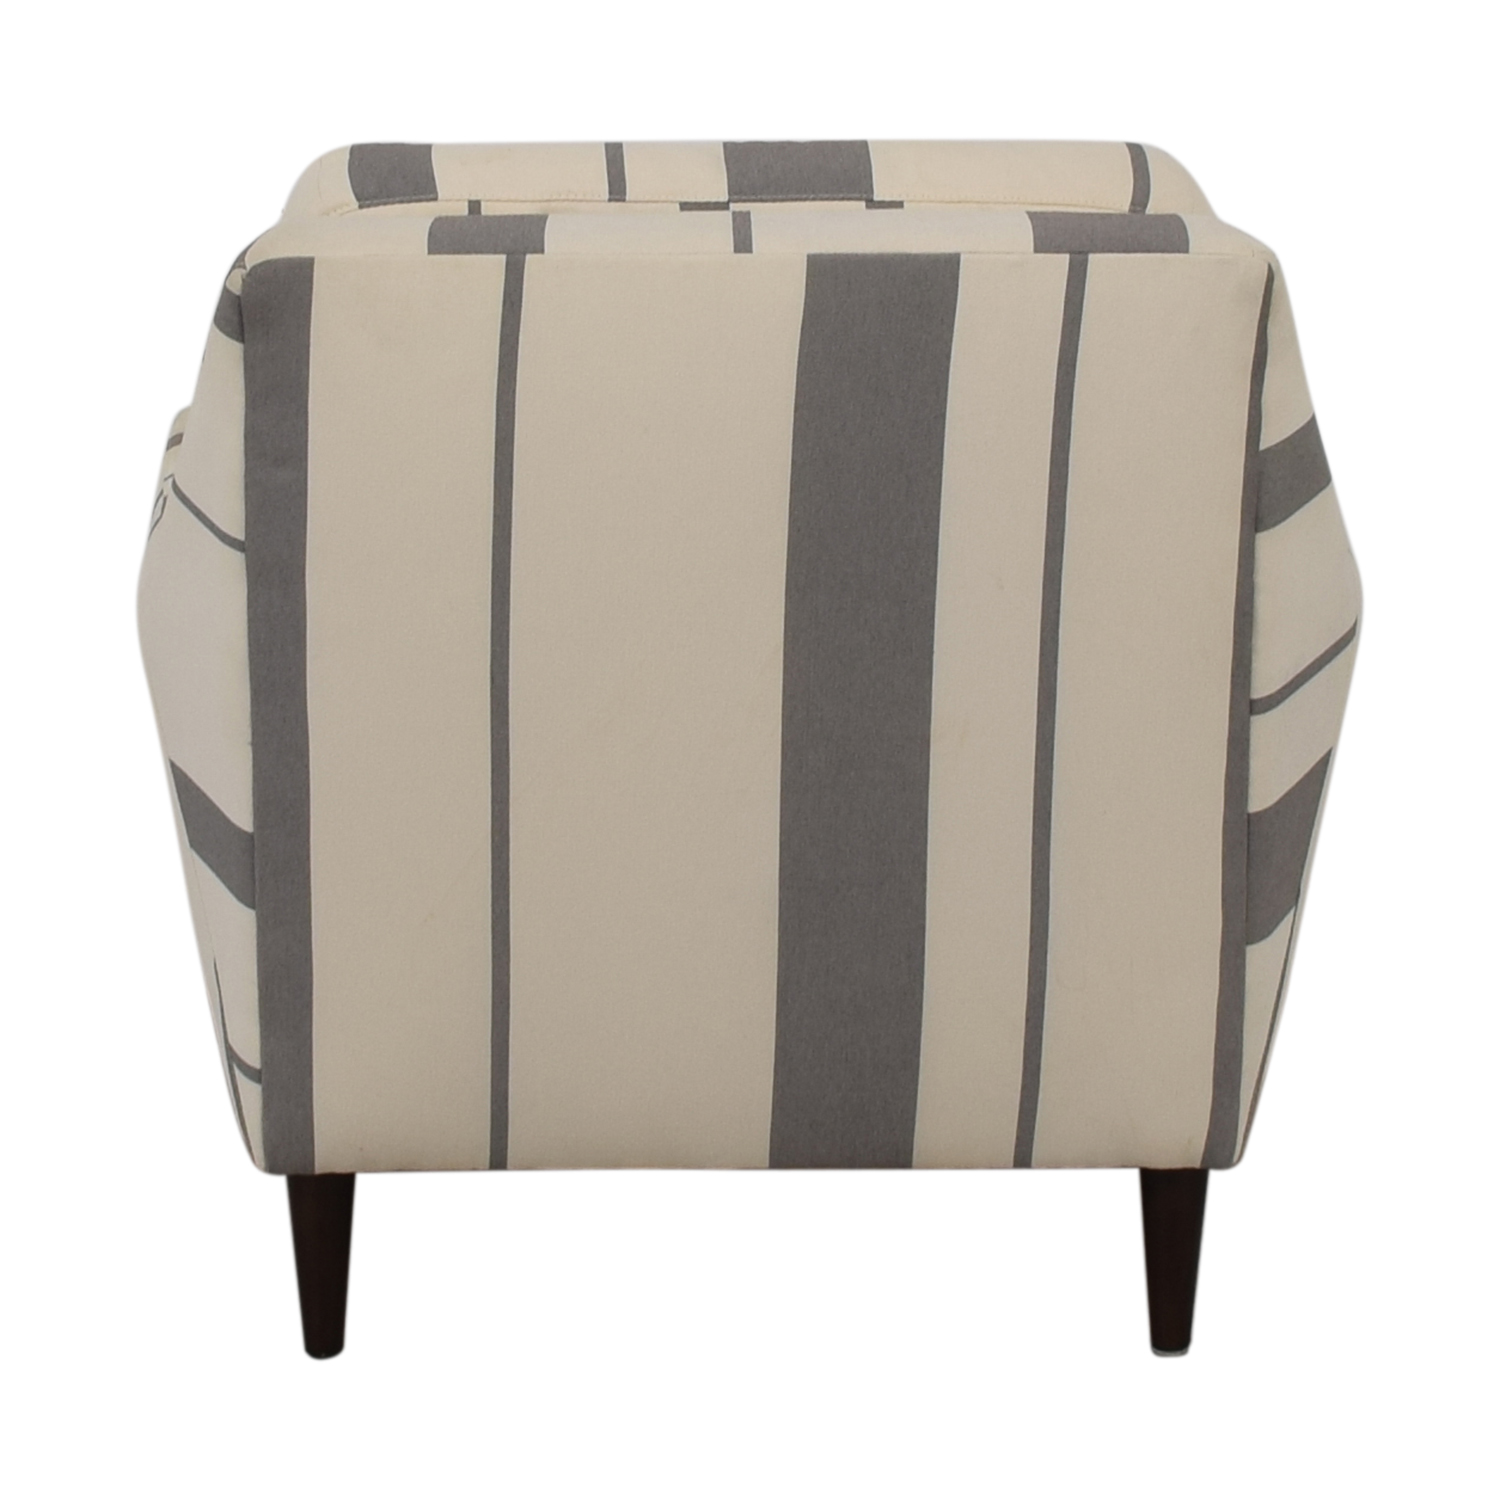 West Elm Everett Grey and White Striped Accent Chair West Elm